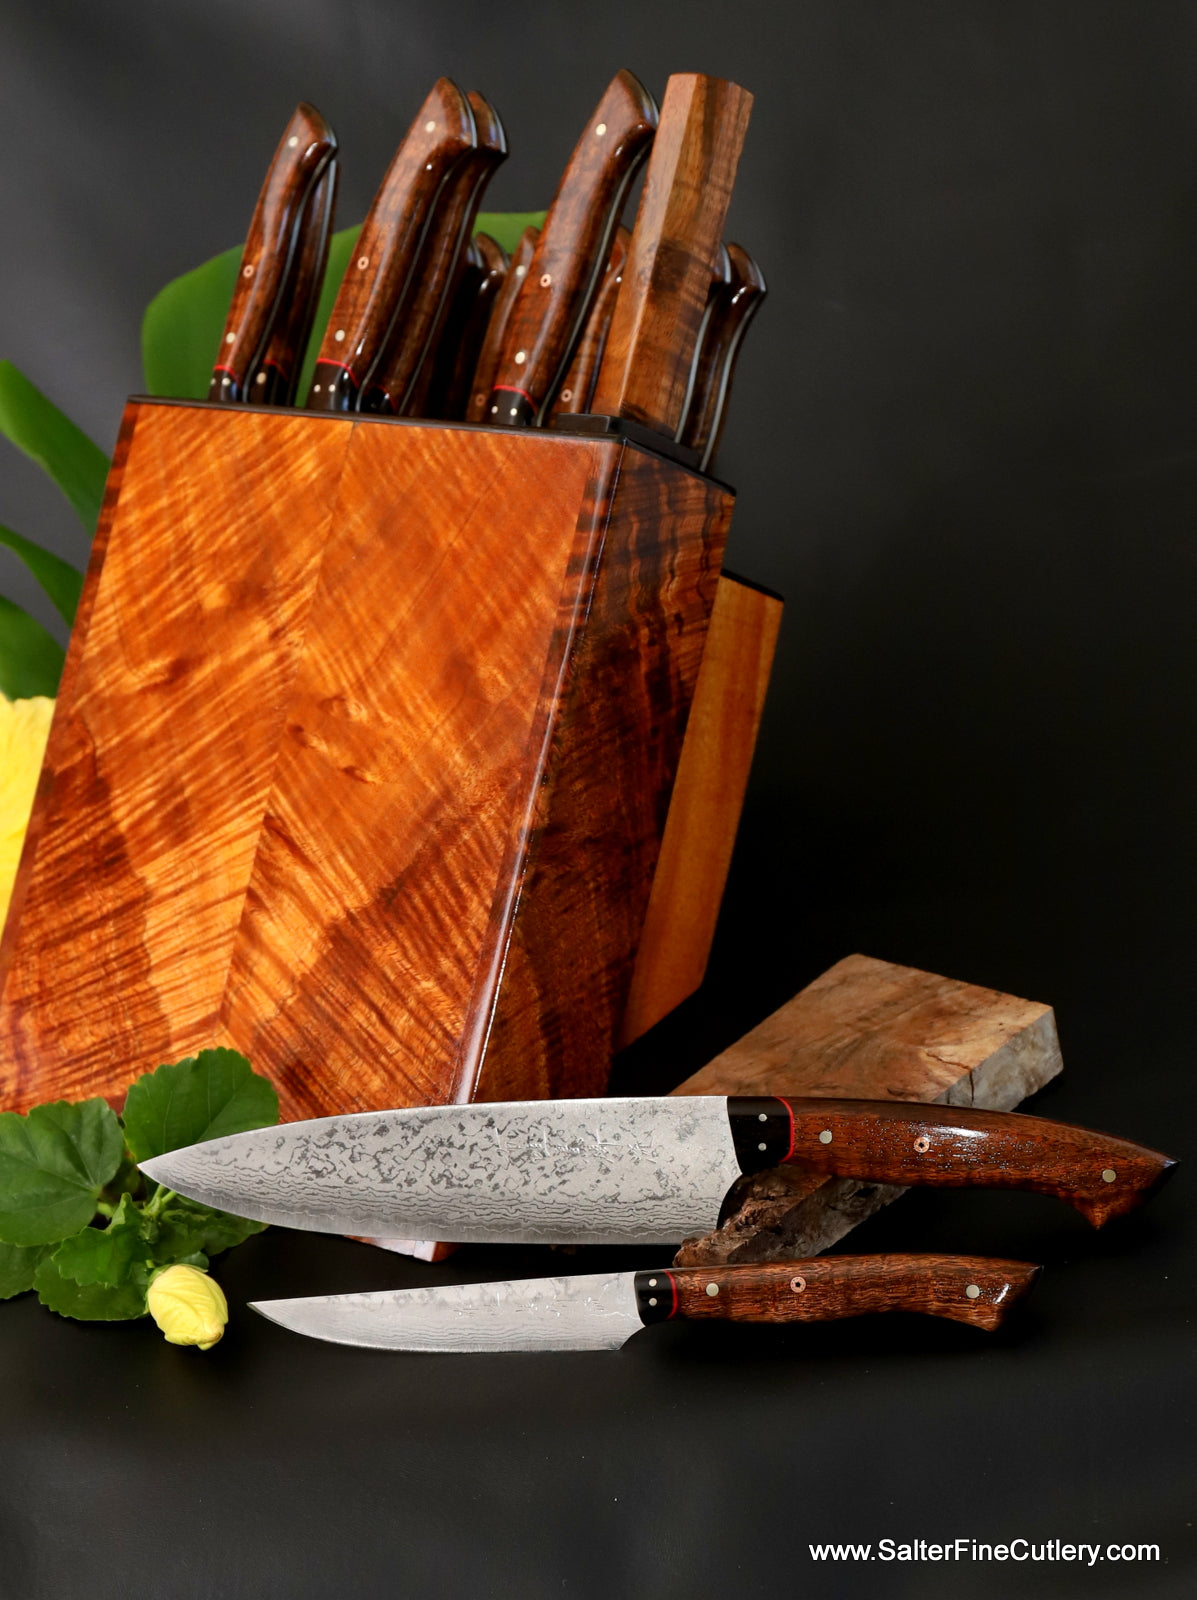 19-piece custom handmade luxury steak carving and chef knife set in knife block by Salter Fine Cutlery